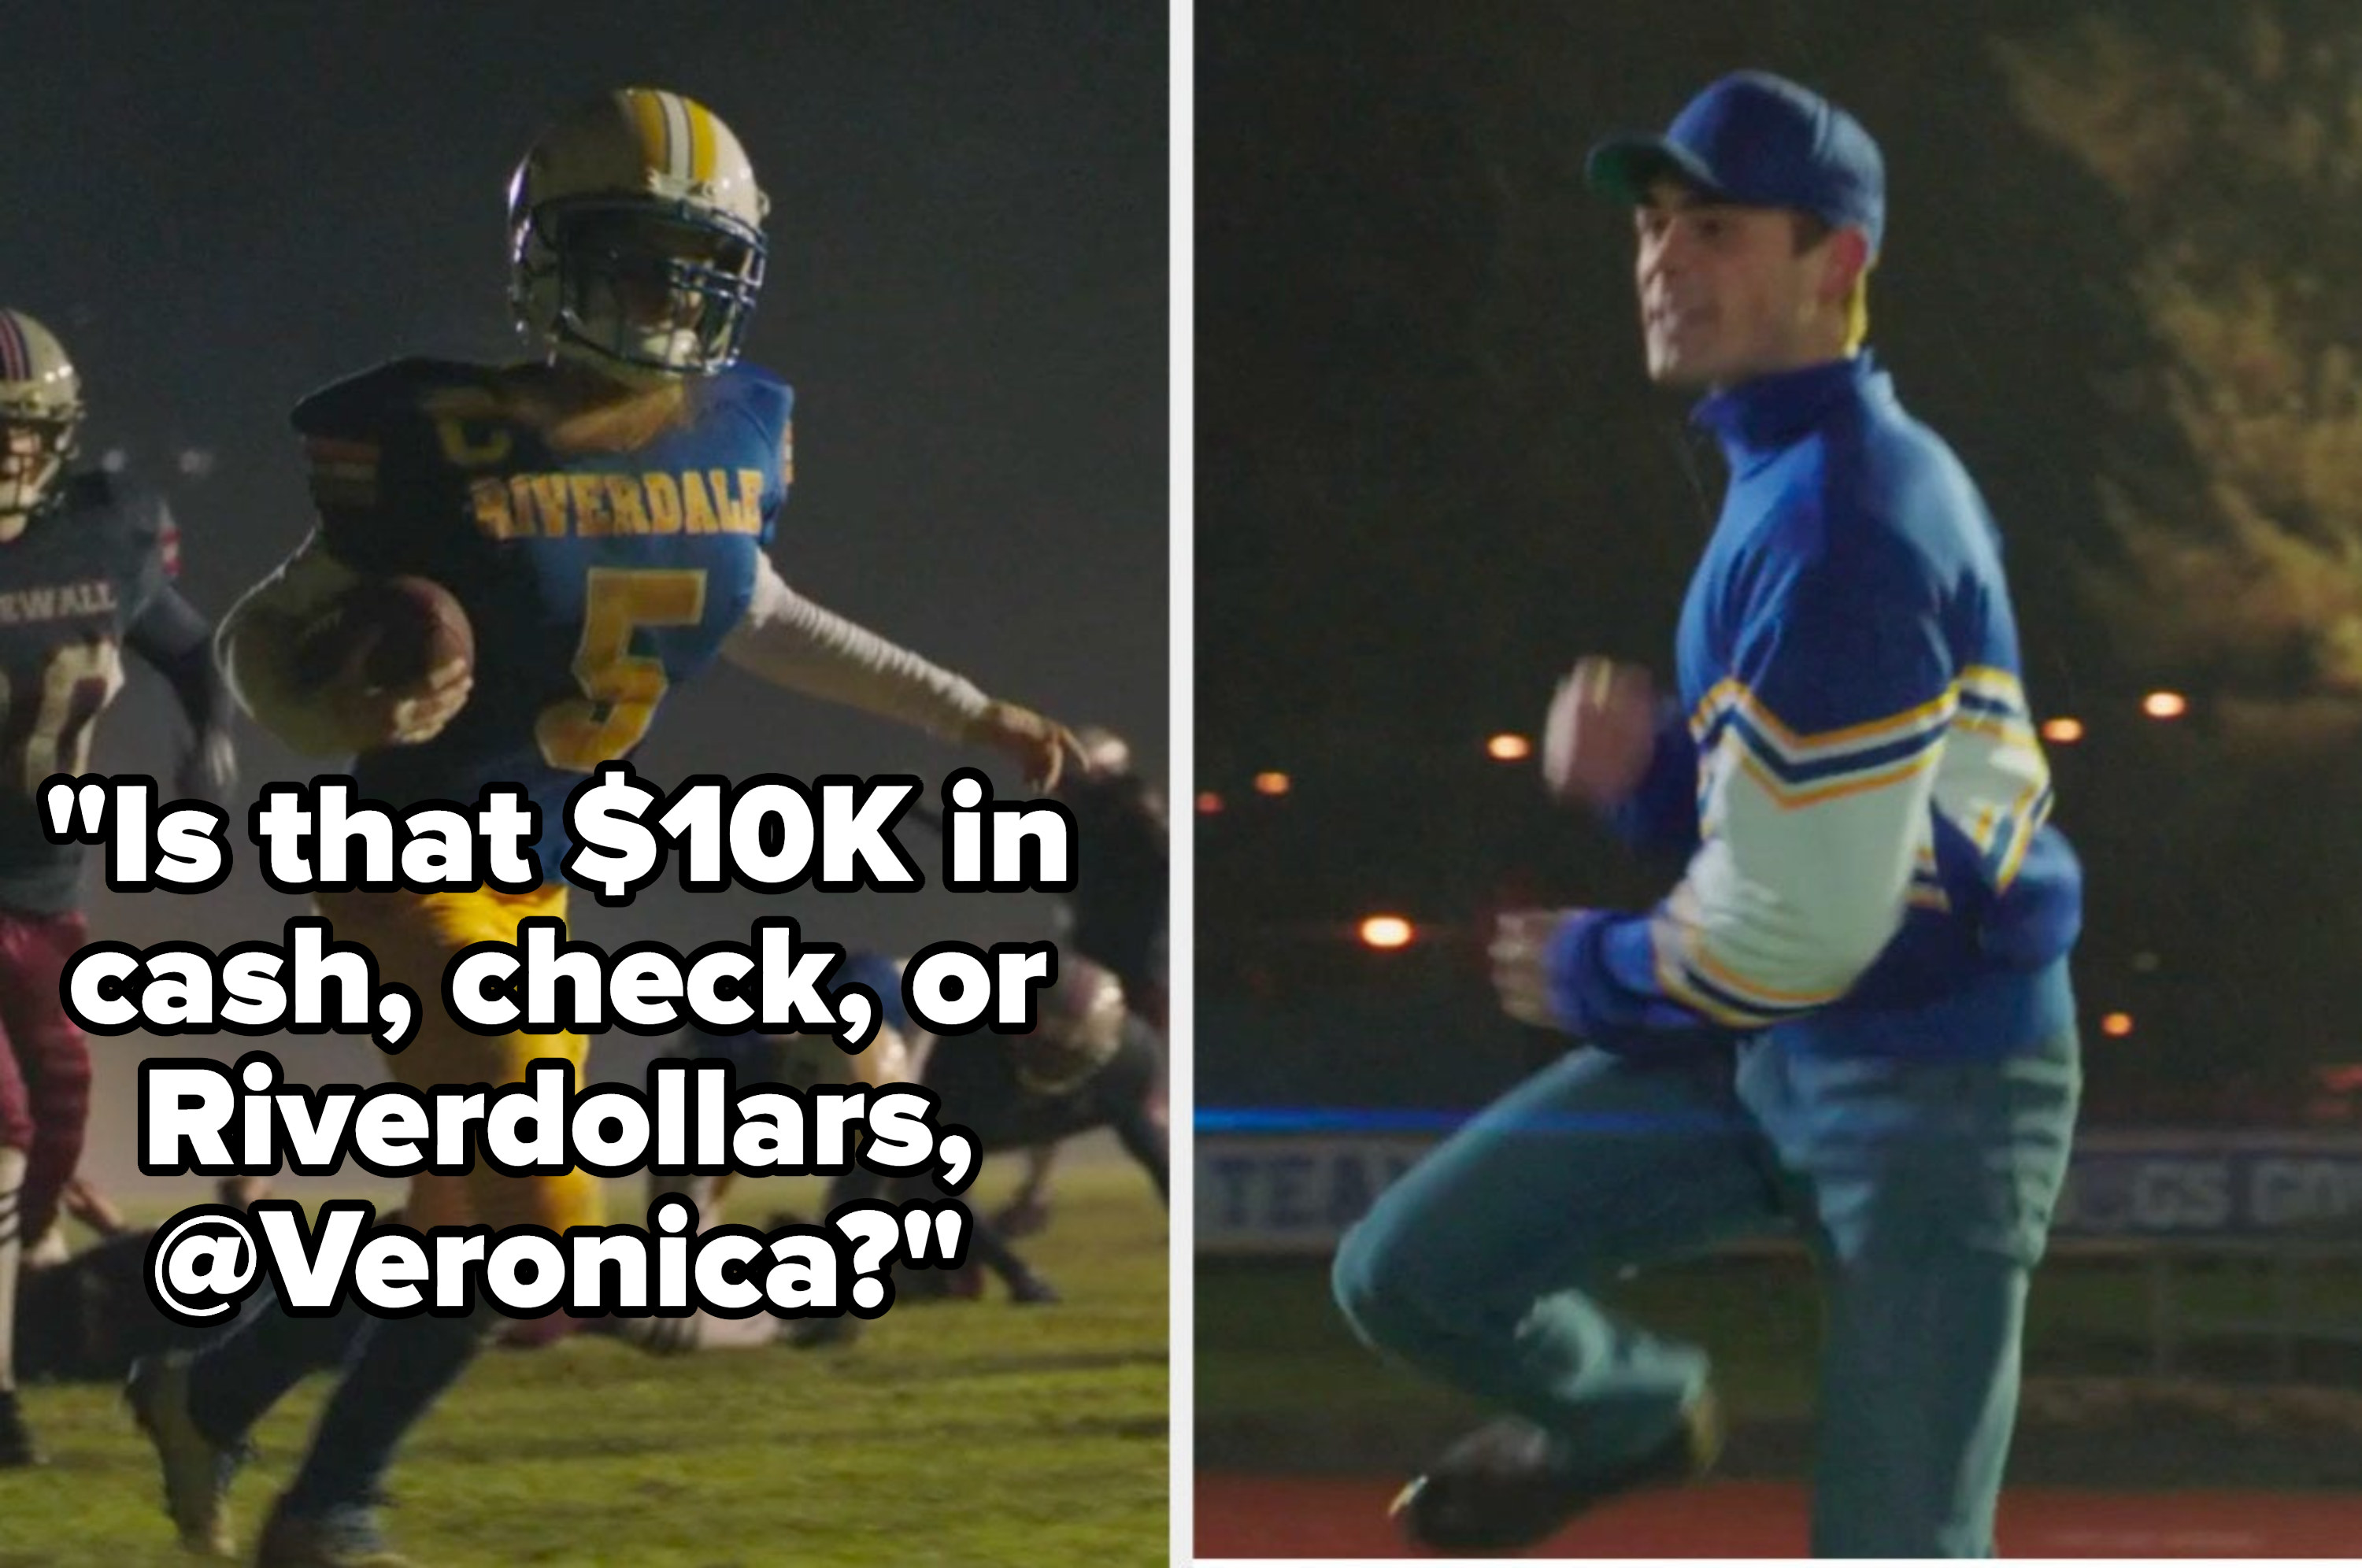 """Football moment where Britta scores a touchdown with the caption """"ist hat $10k in cash, check, or Riverdollars @Veronica?"""""""